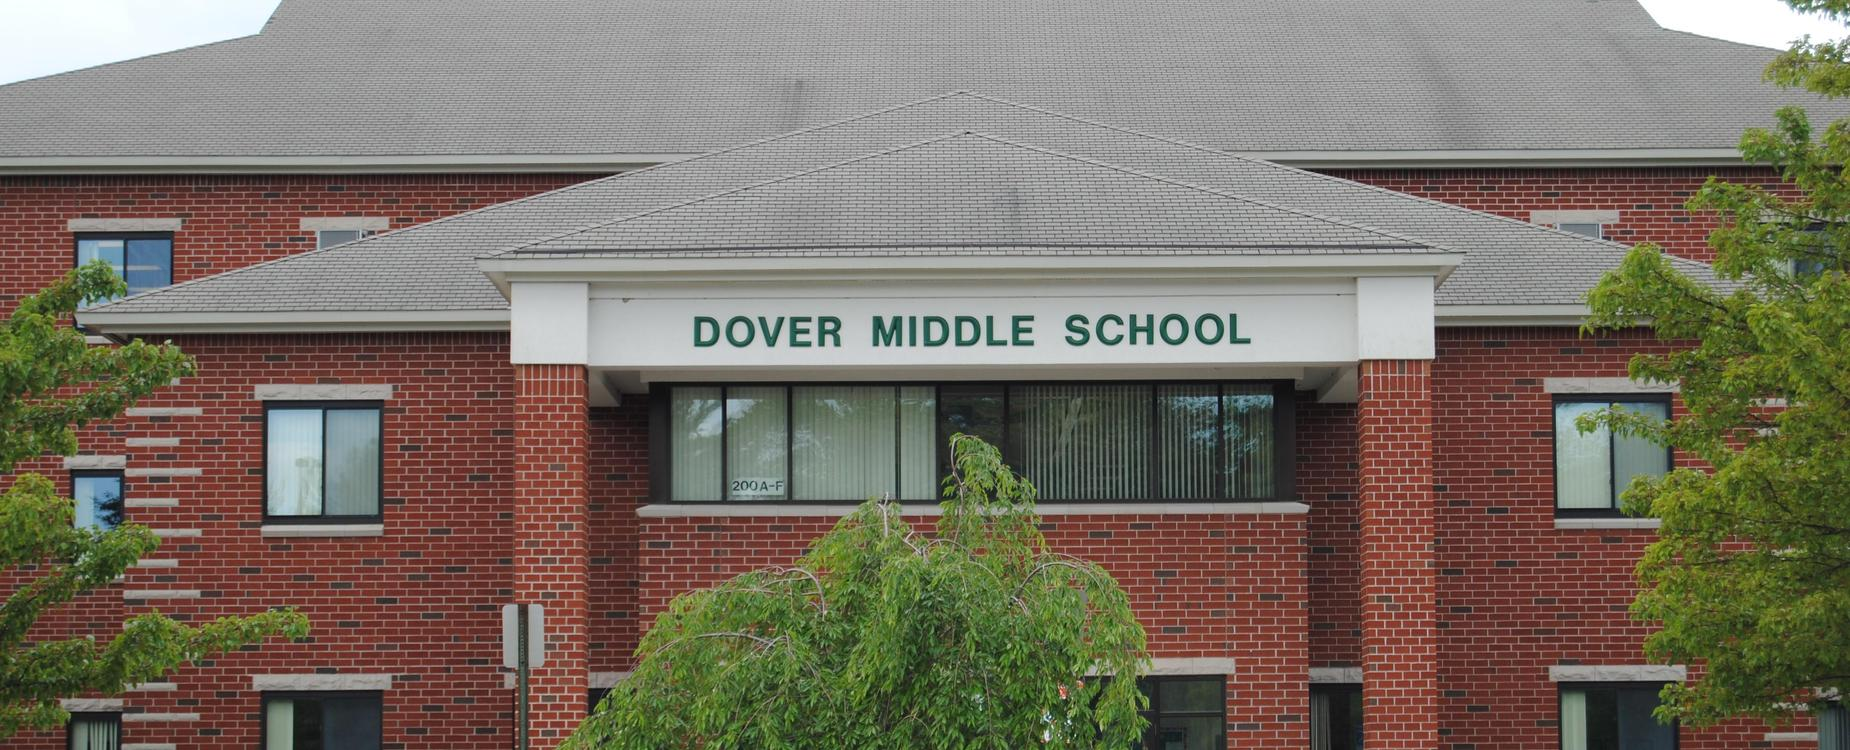 Dover Middle School Building Front